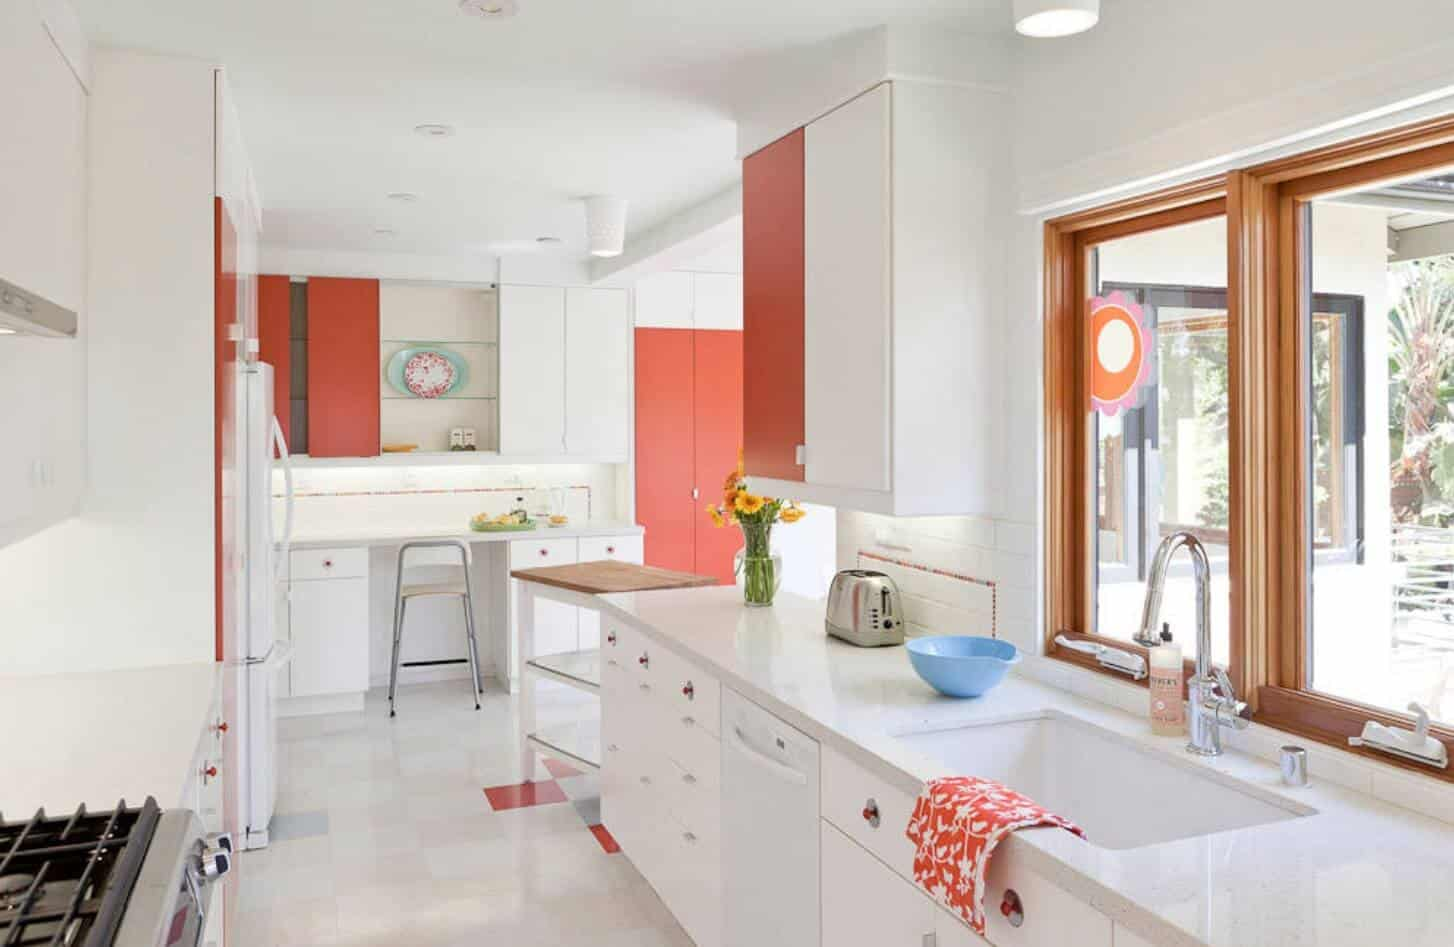 Ranch kitchen with checkered flooring and wooden framed windows showcases white appliances and cabinetry with subtle red accents.